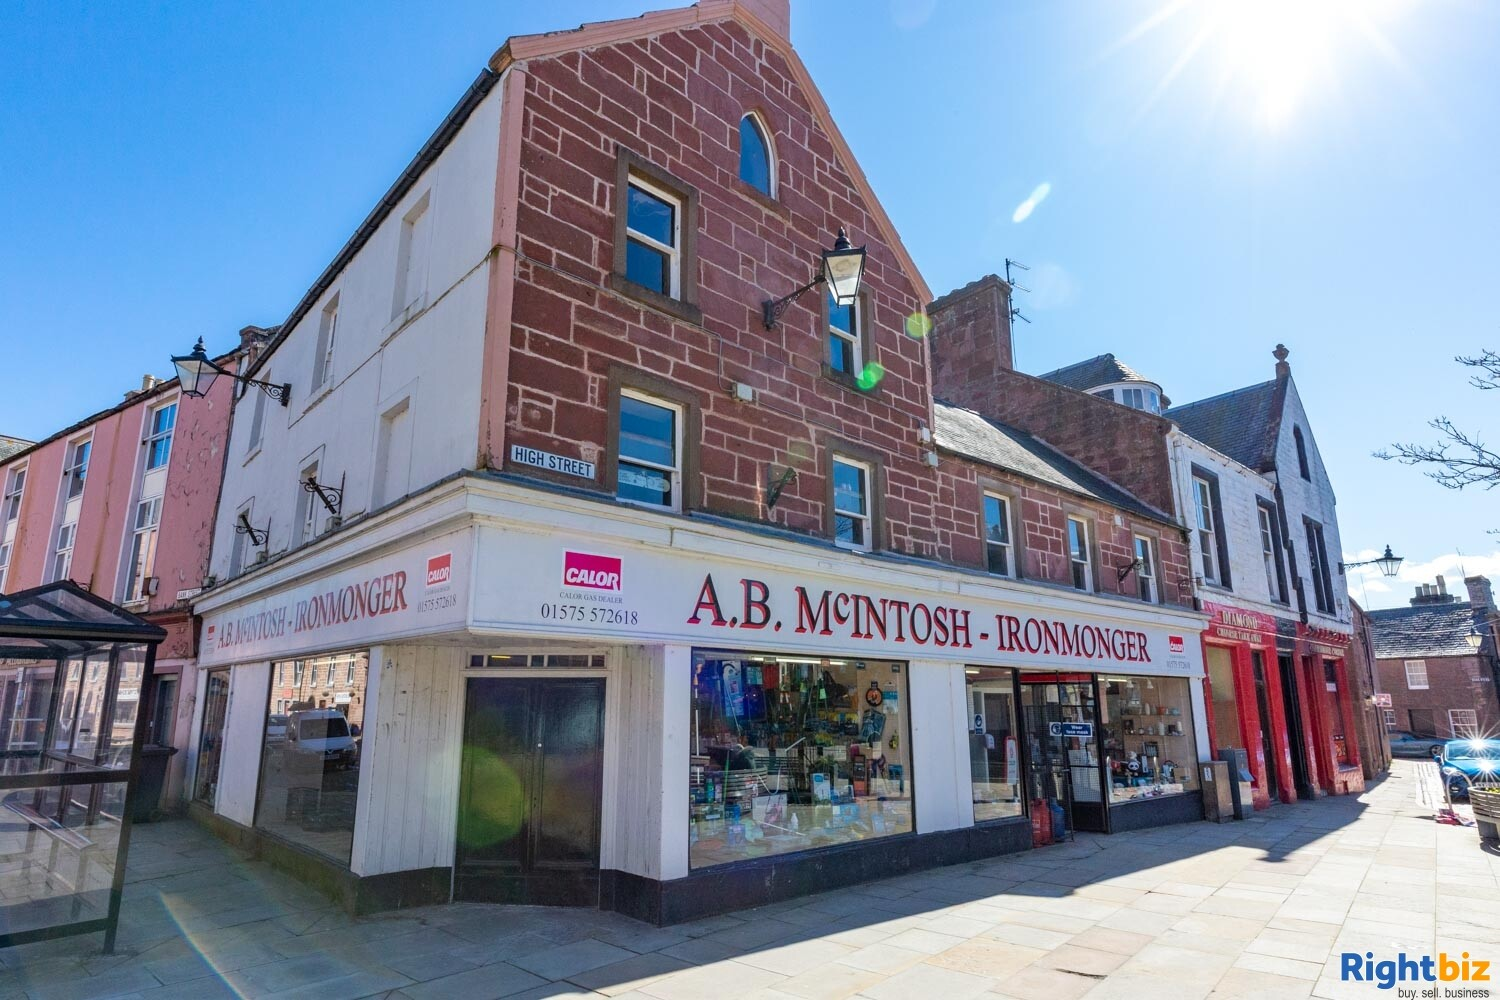 Freehold Hospitality & Residential Development Opportunity, Kirriemuir, Angus - Image 3